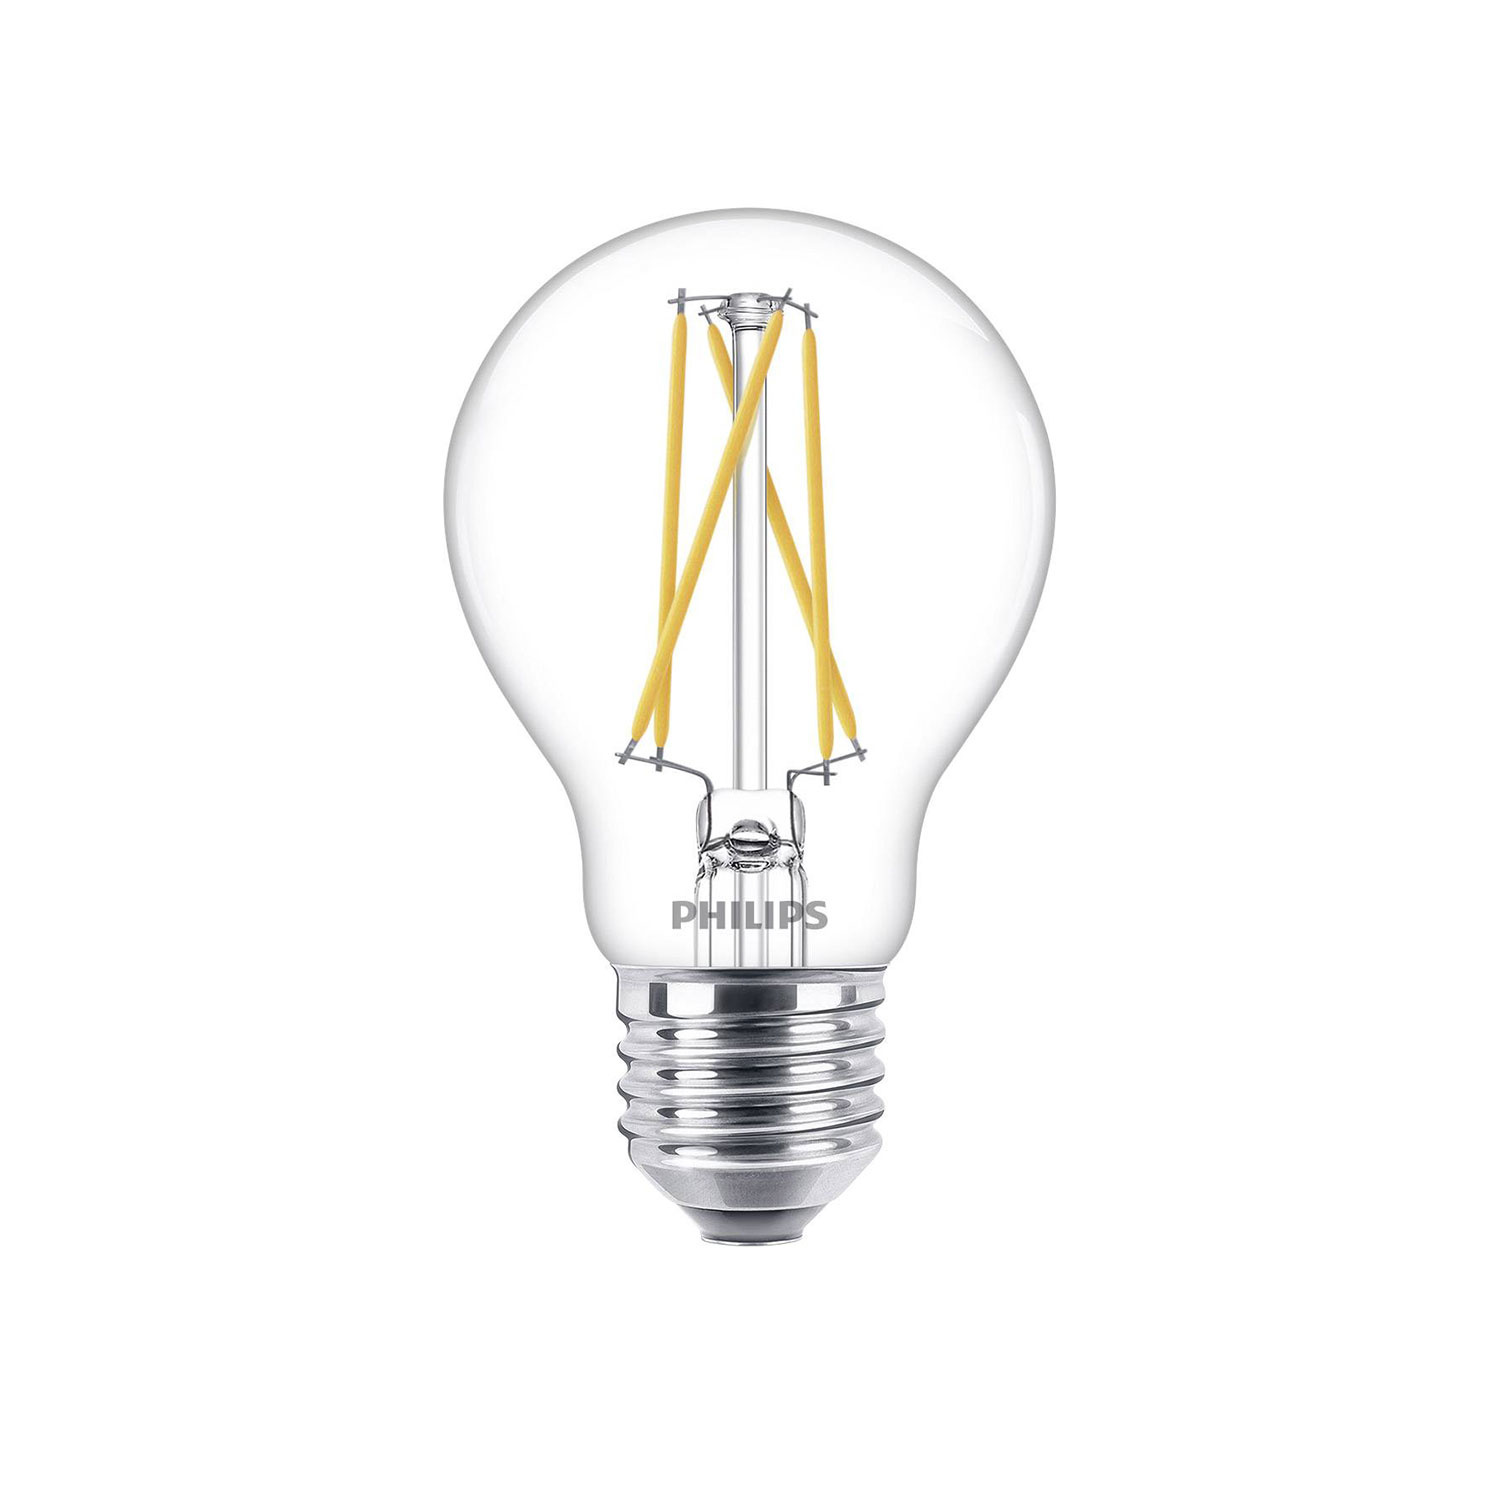 Philips LED E27 lamp 60-9 Watt Philips warmglow filament DIM